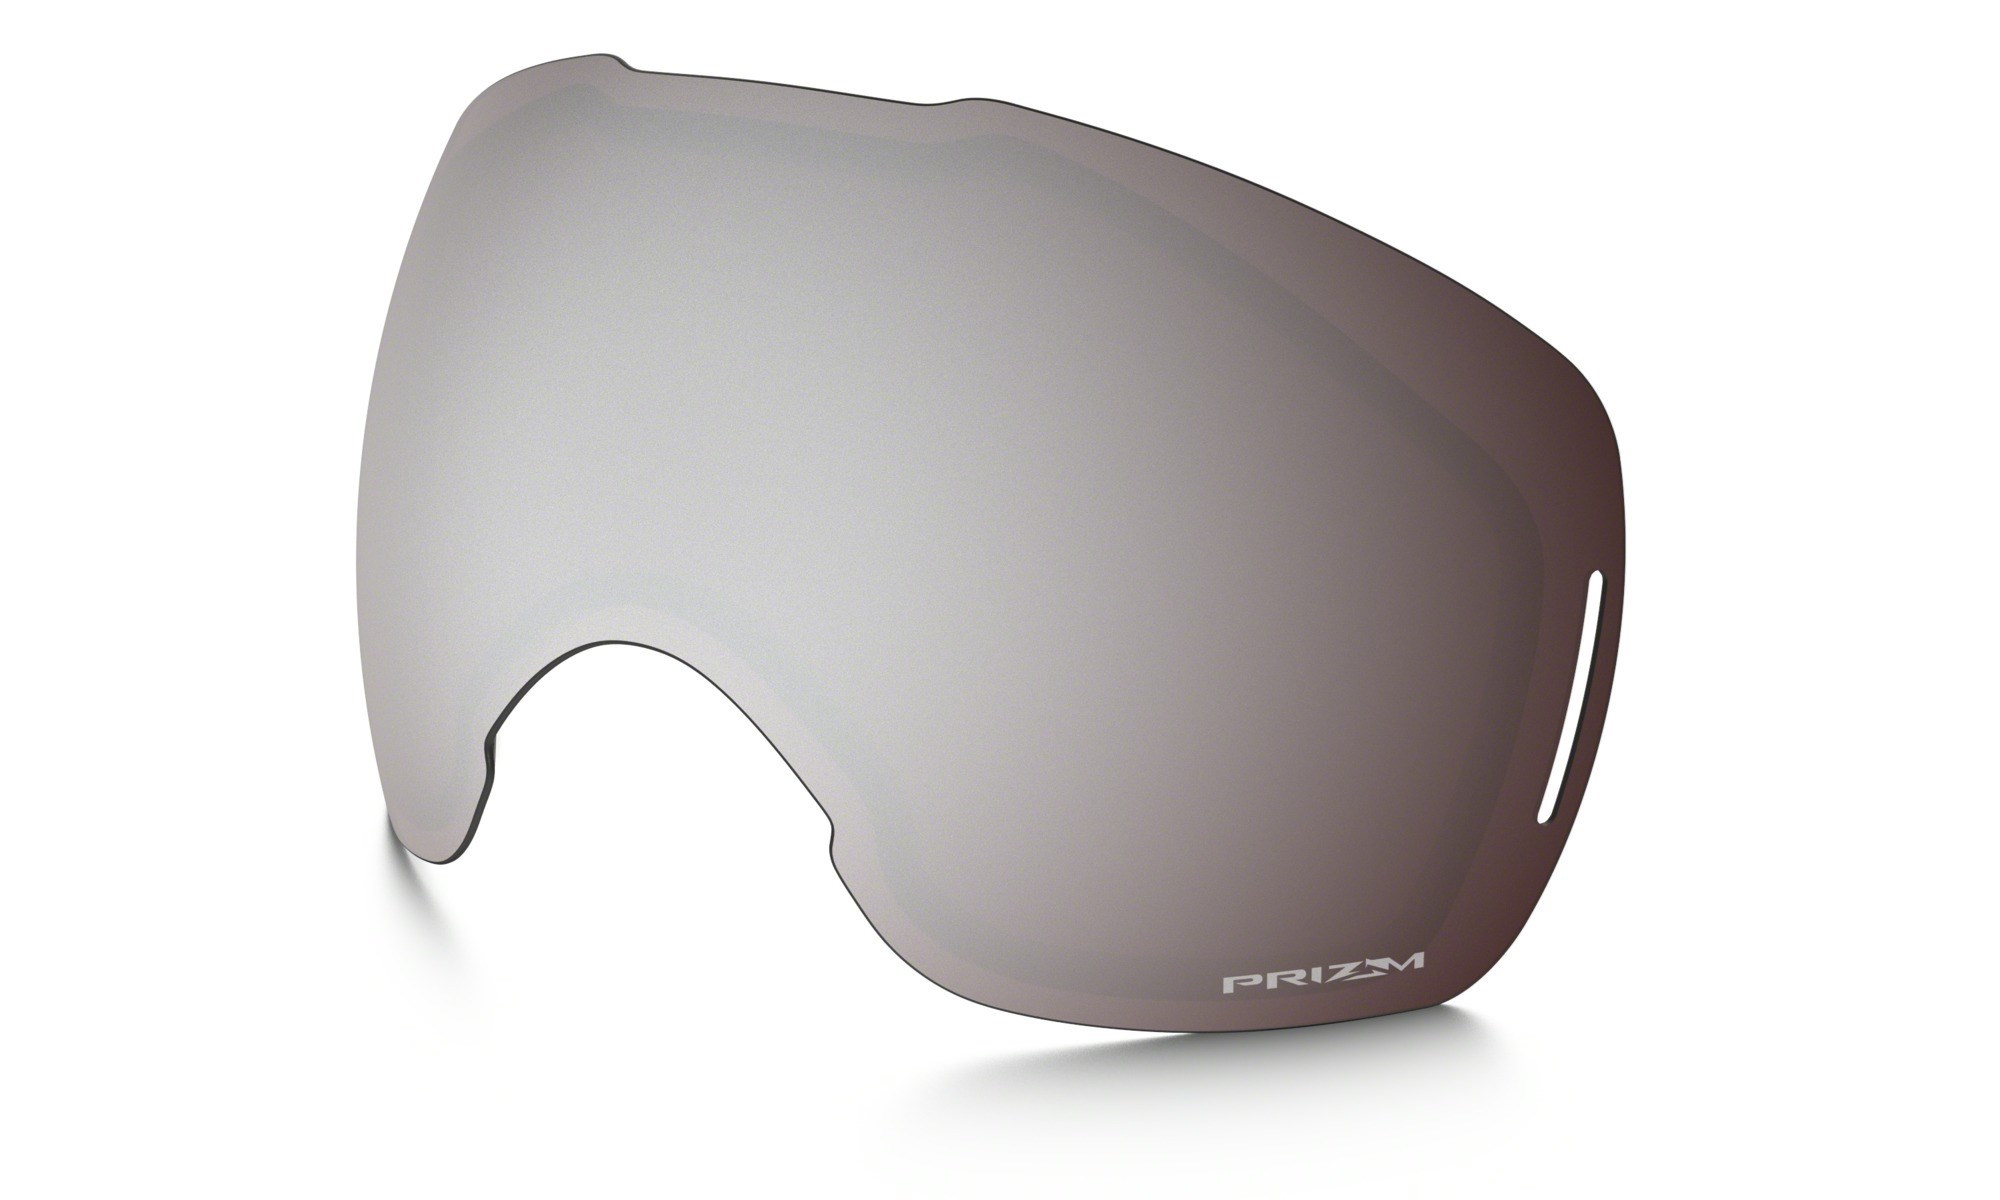 6e28a6c2cd Oakley Airbrake XL Replacement Lens Prizm Black. 0 (Be the first to add a  review!)